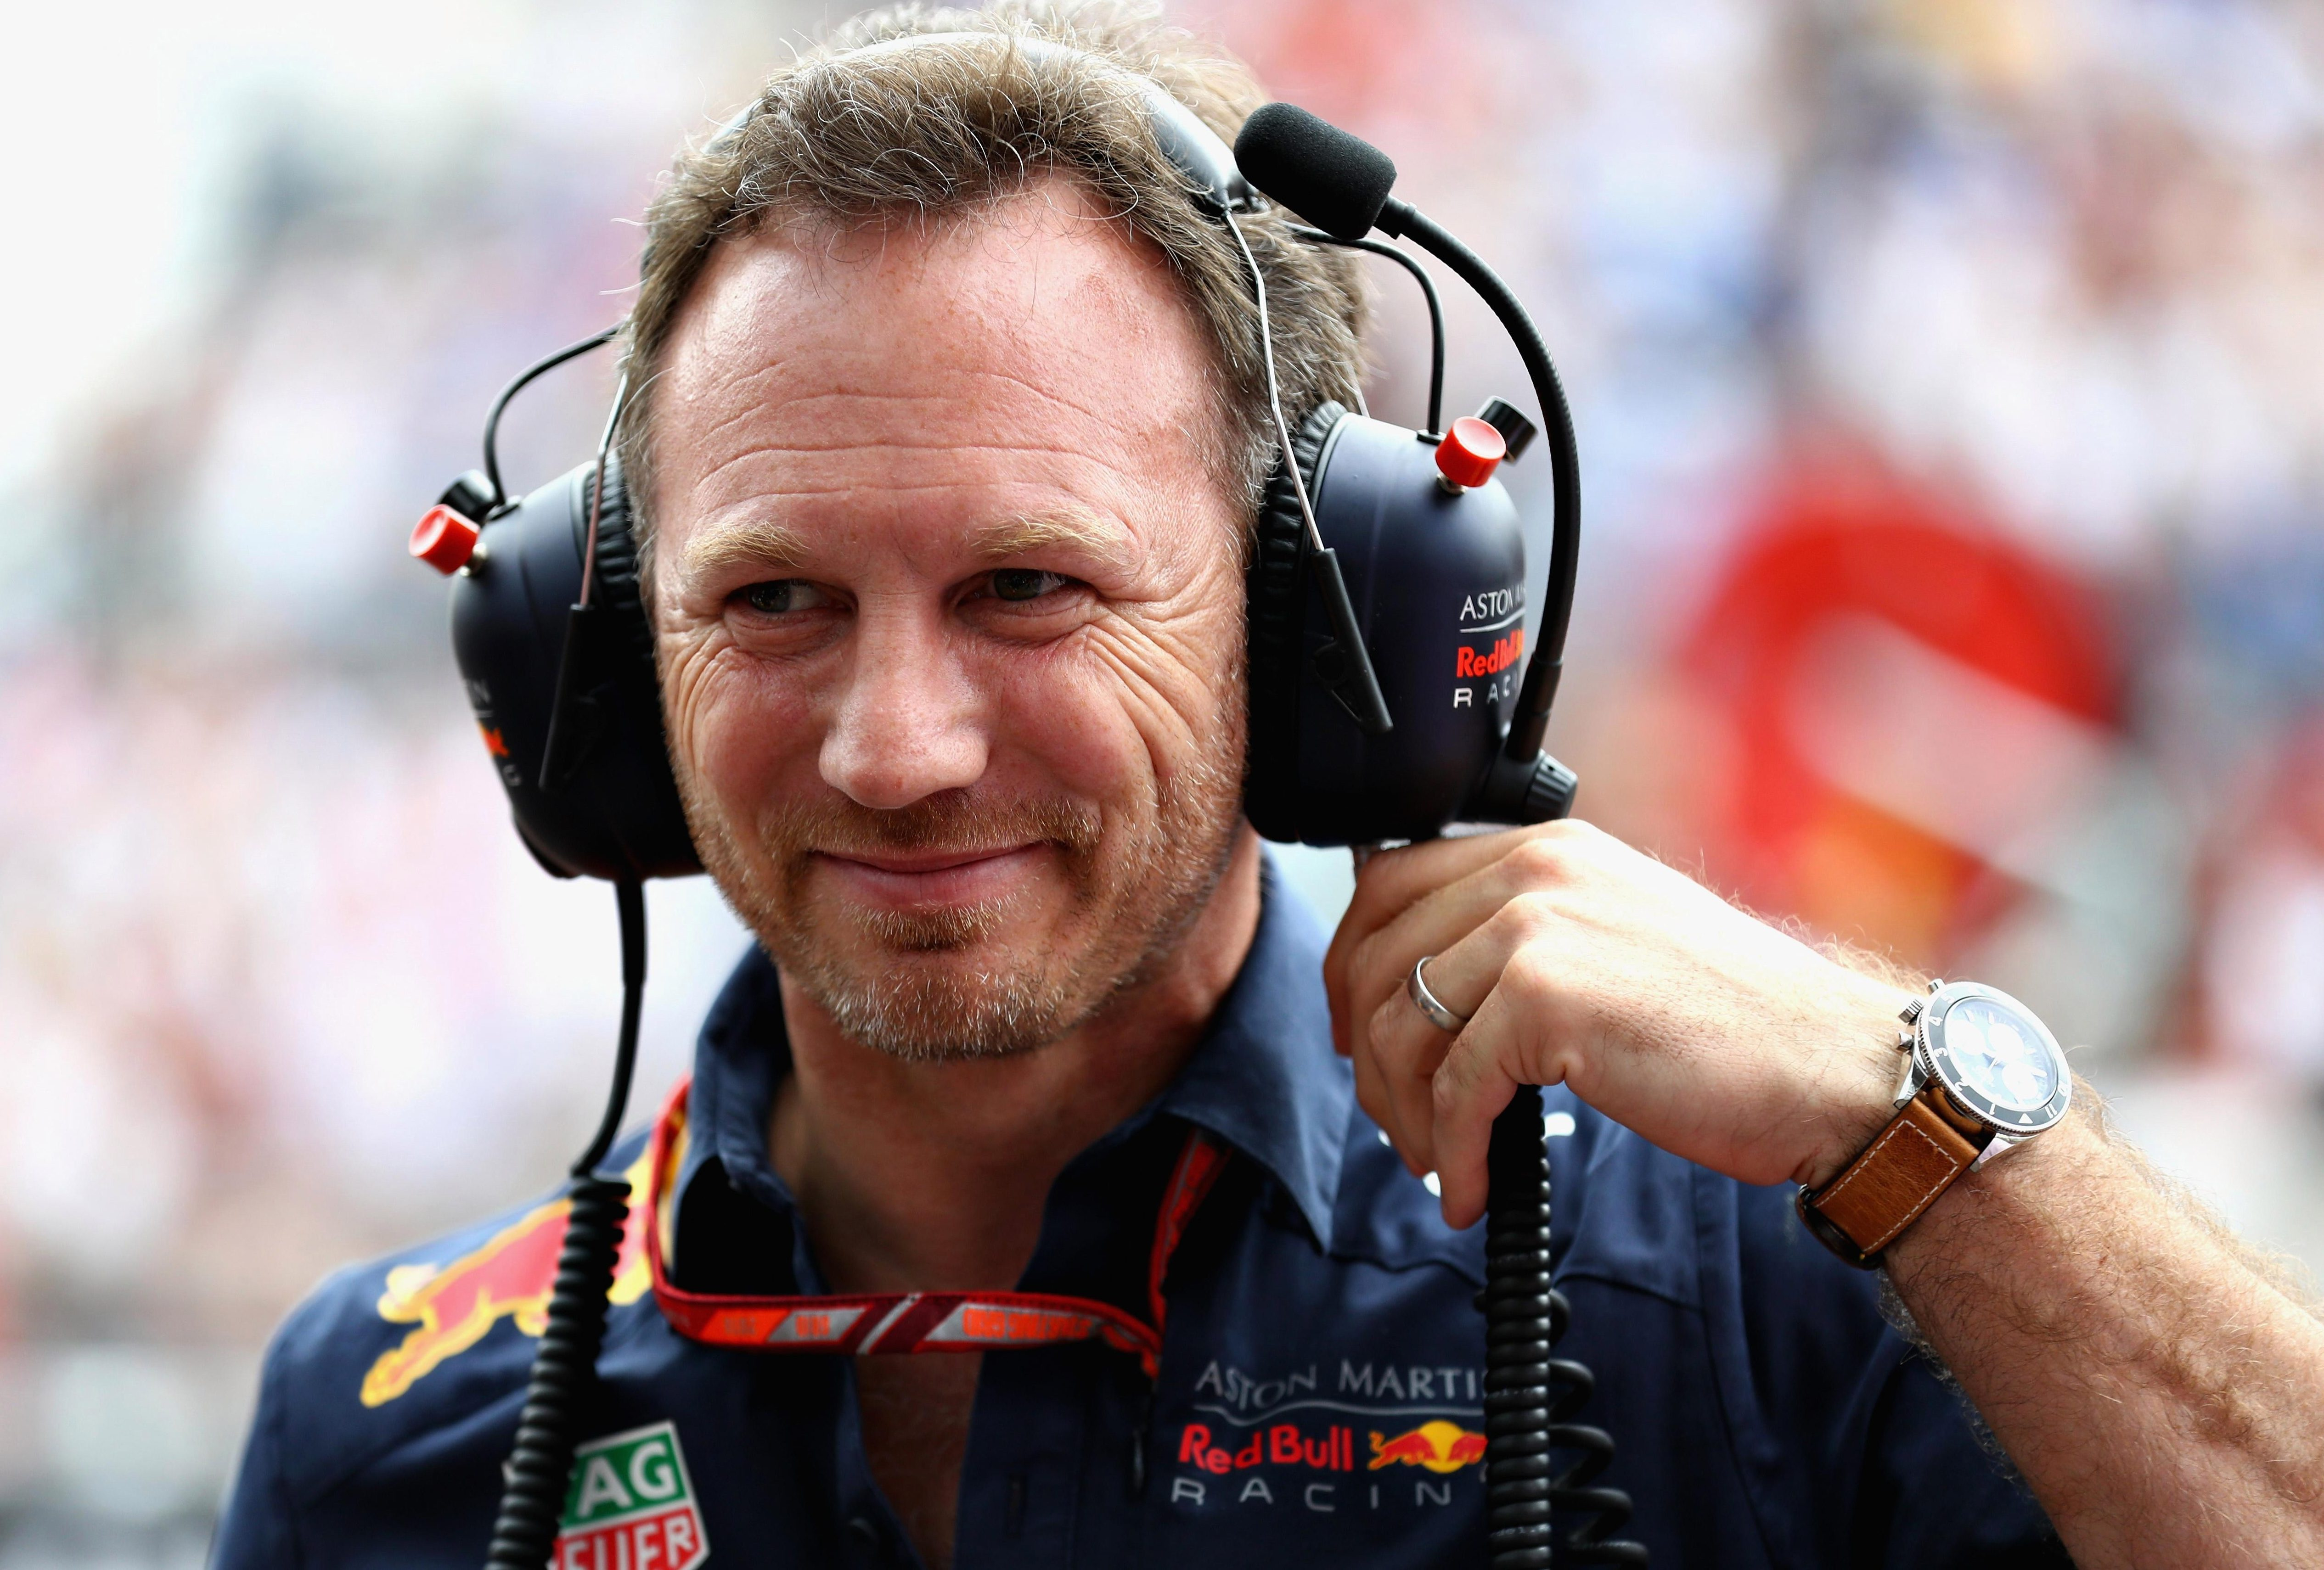 Red Bull boss Christian Horner admitted he may have to talk to Verstappen